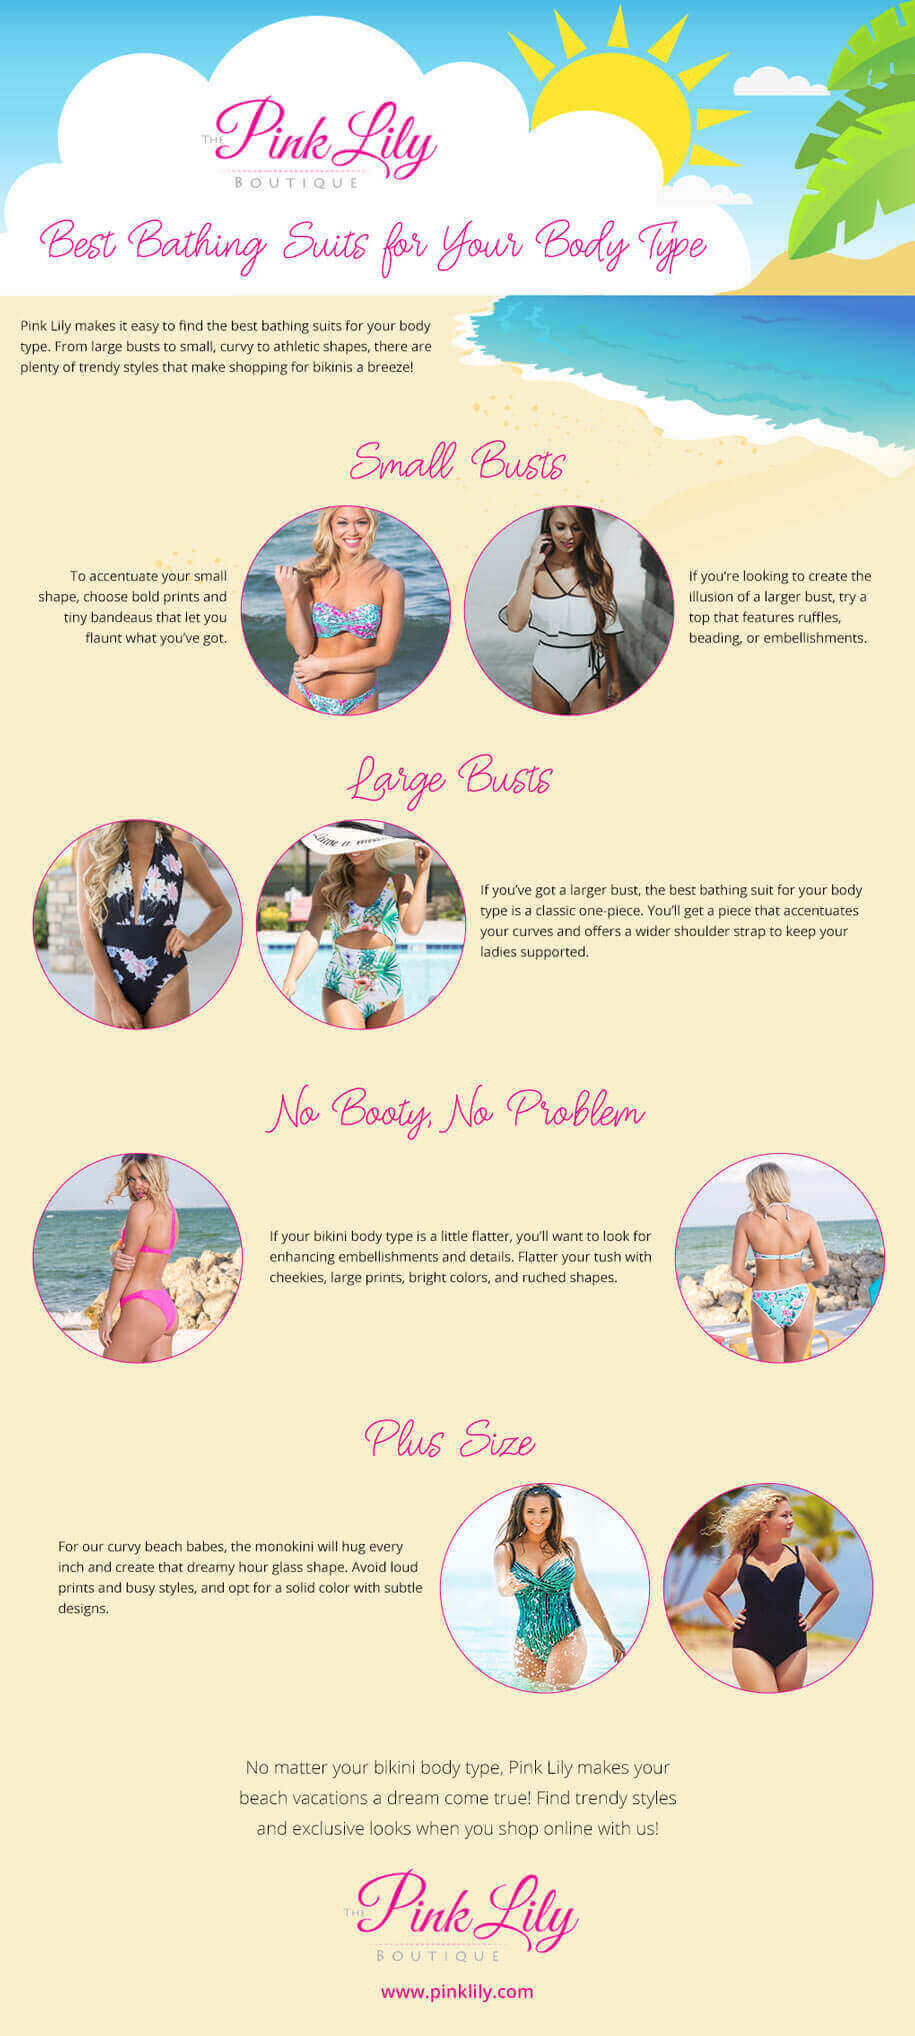 Best Bathing Suits for Your Body Type